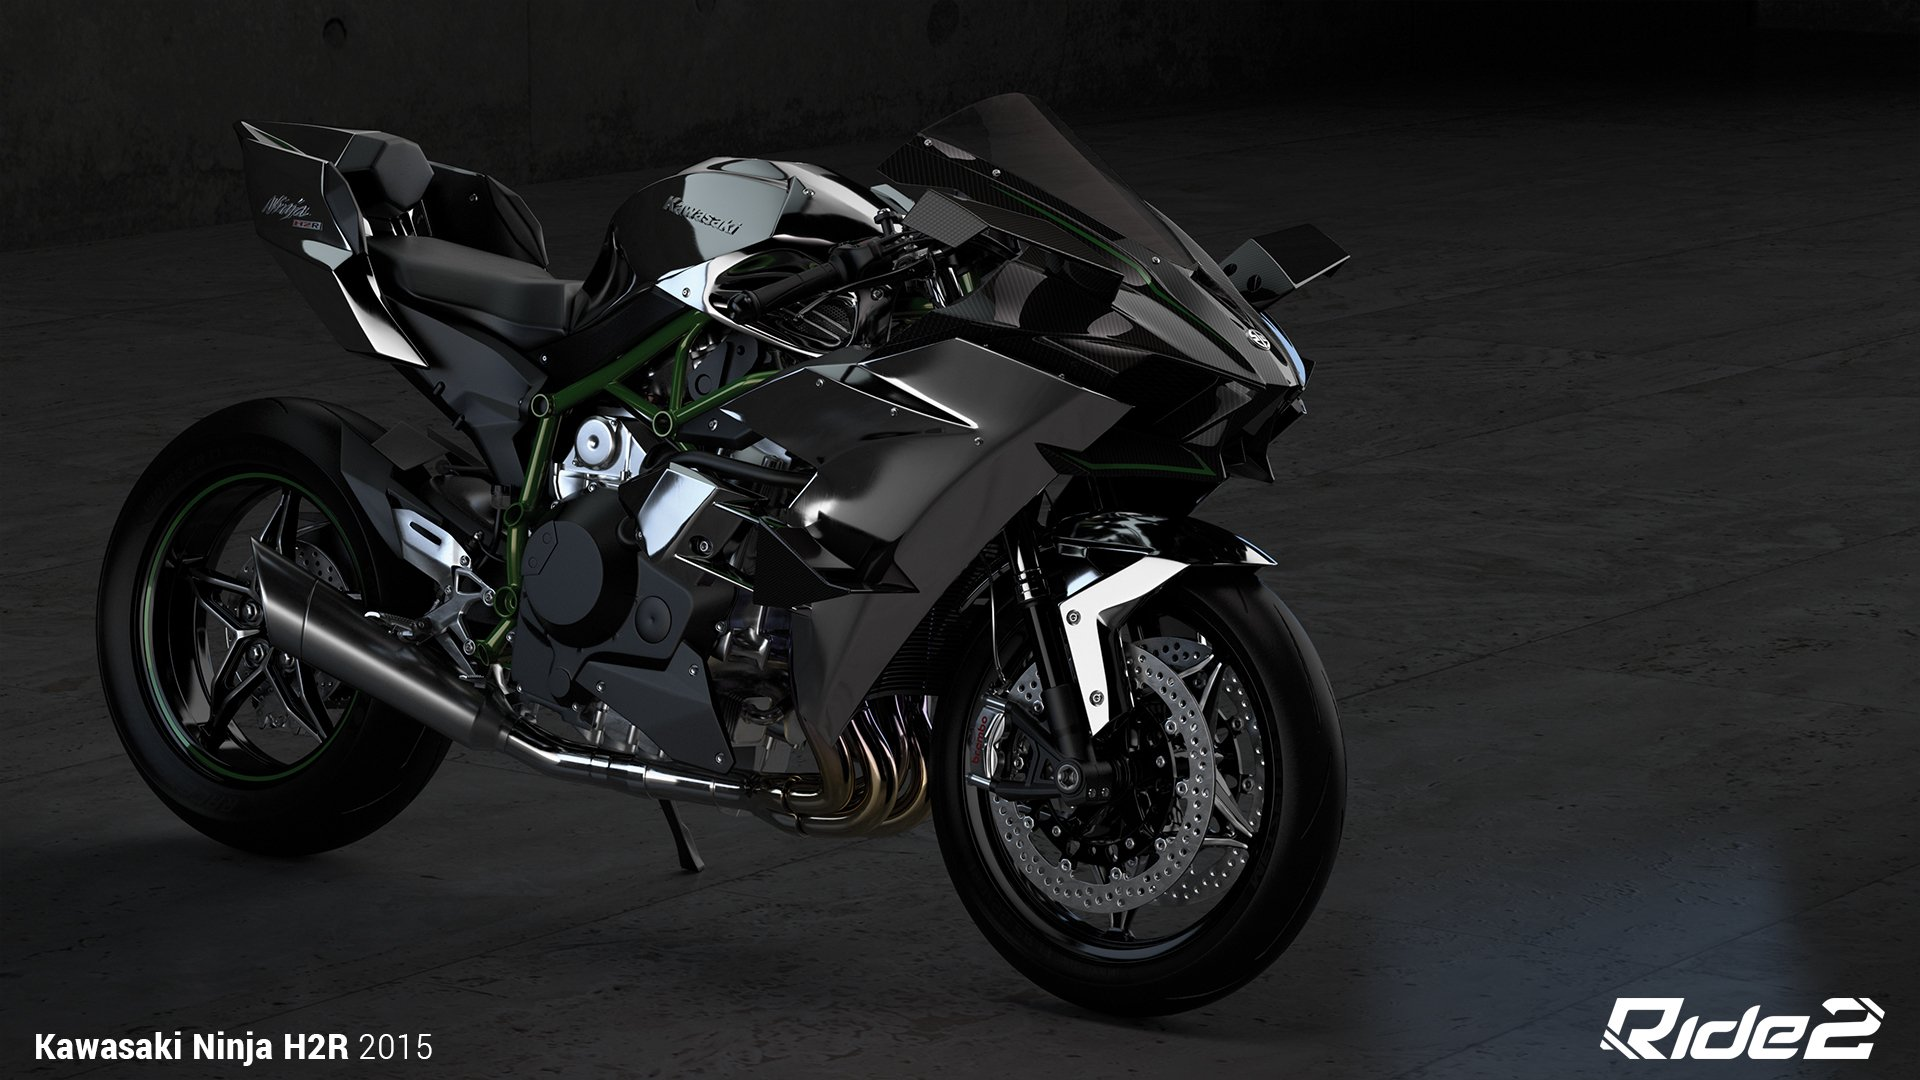 2015 Kawasaki Ninja H2R HD Wallpaper